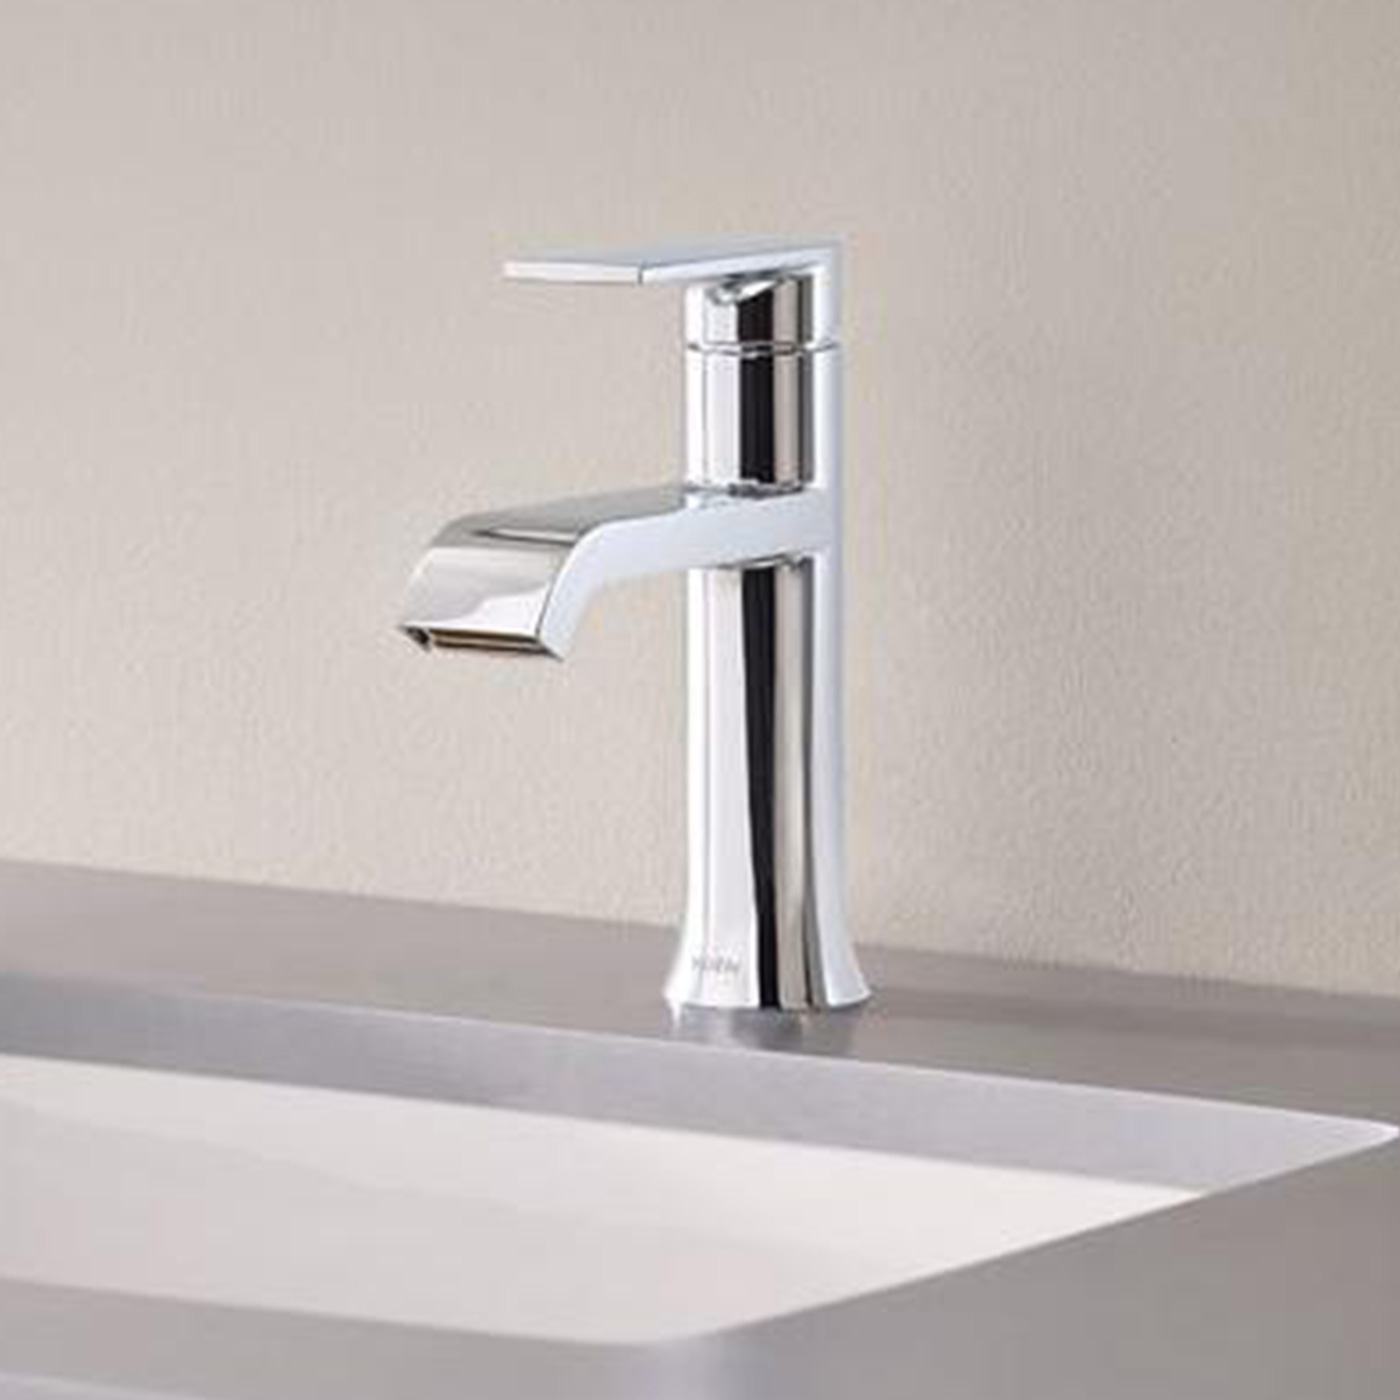 Modern Faucet Bathroom Embellishment - Interior Design Ideas & Home on